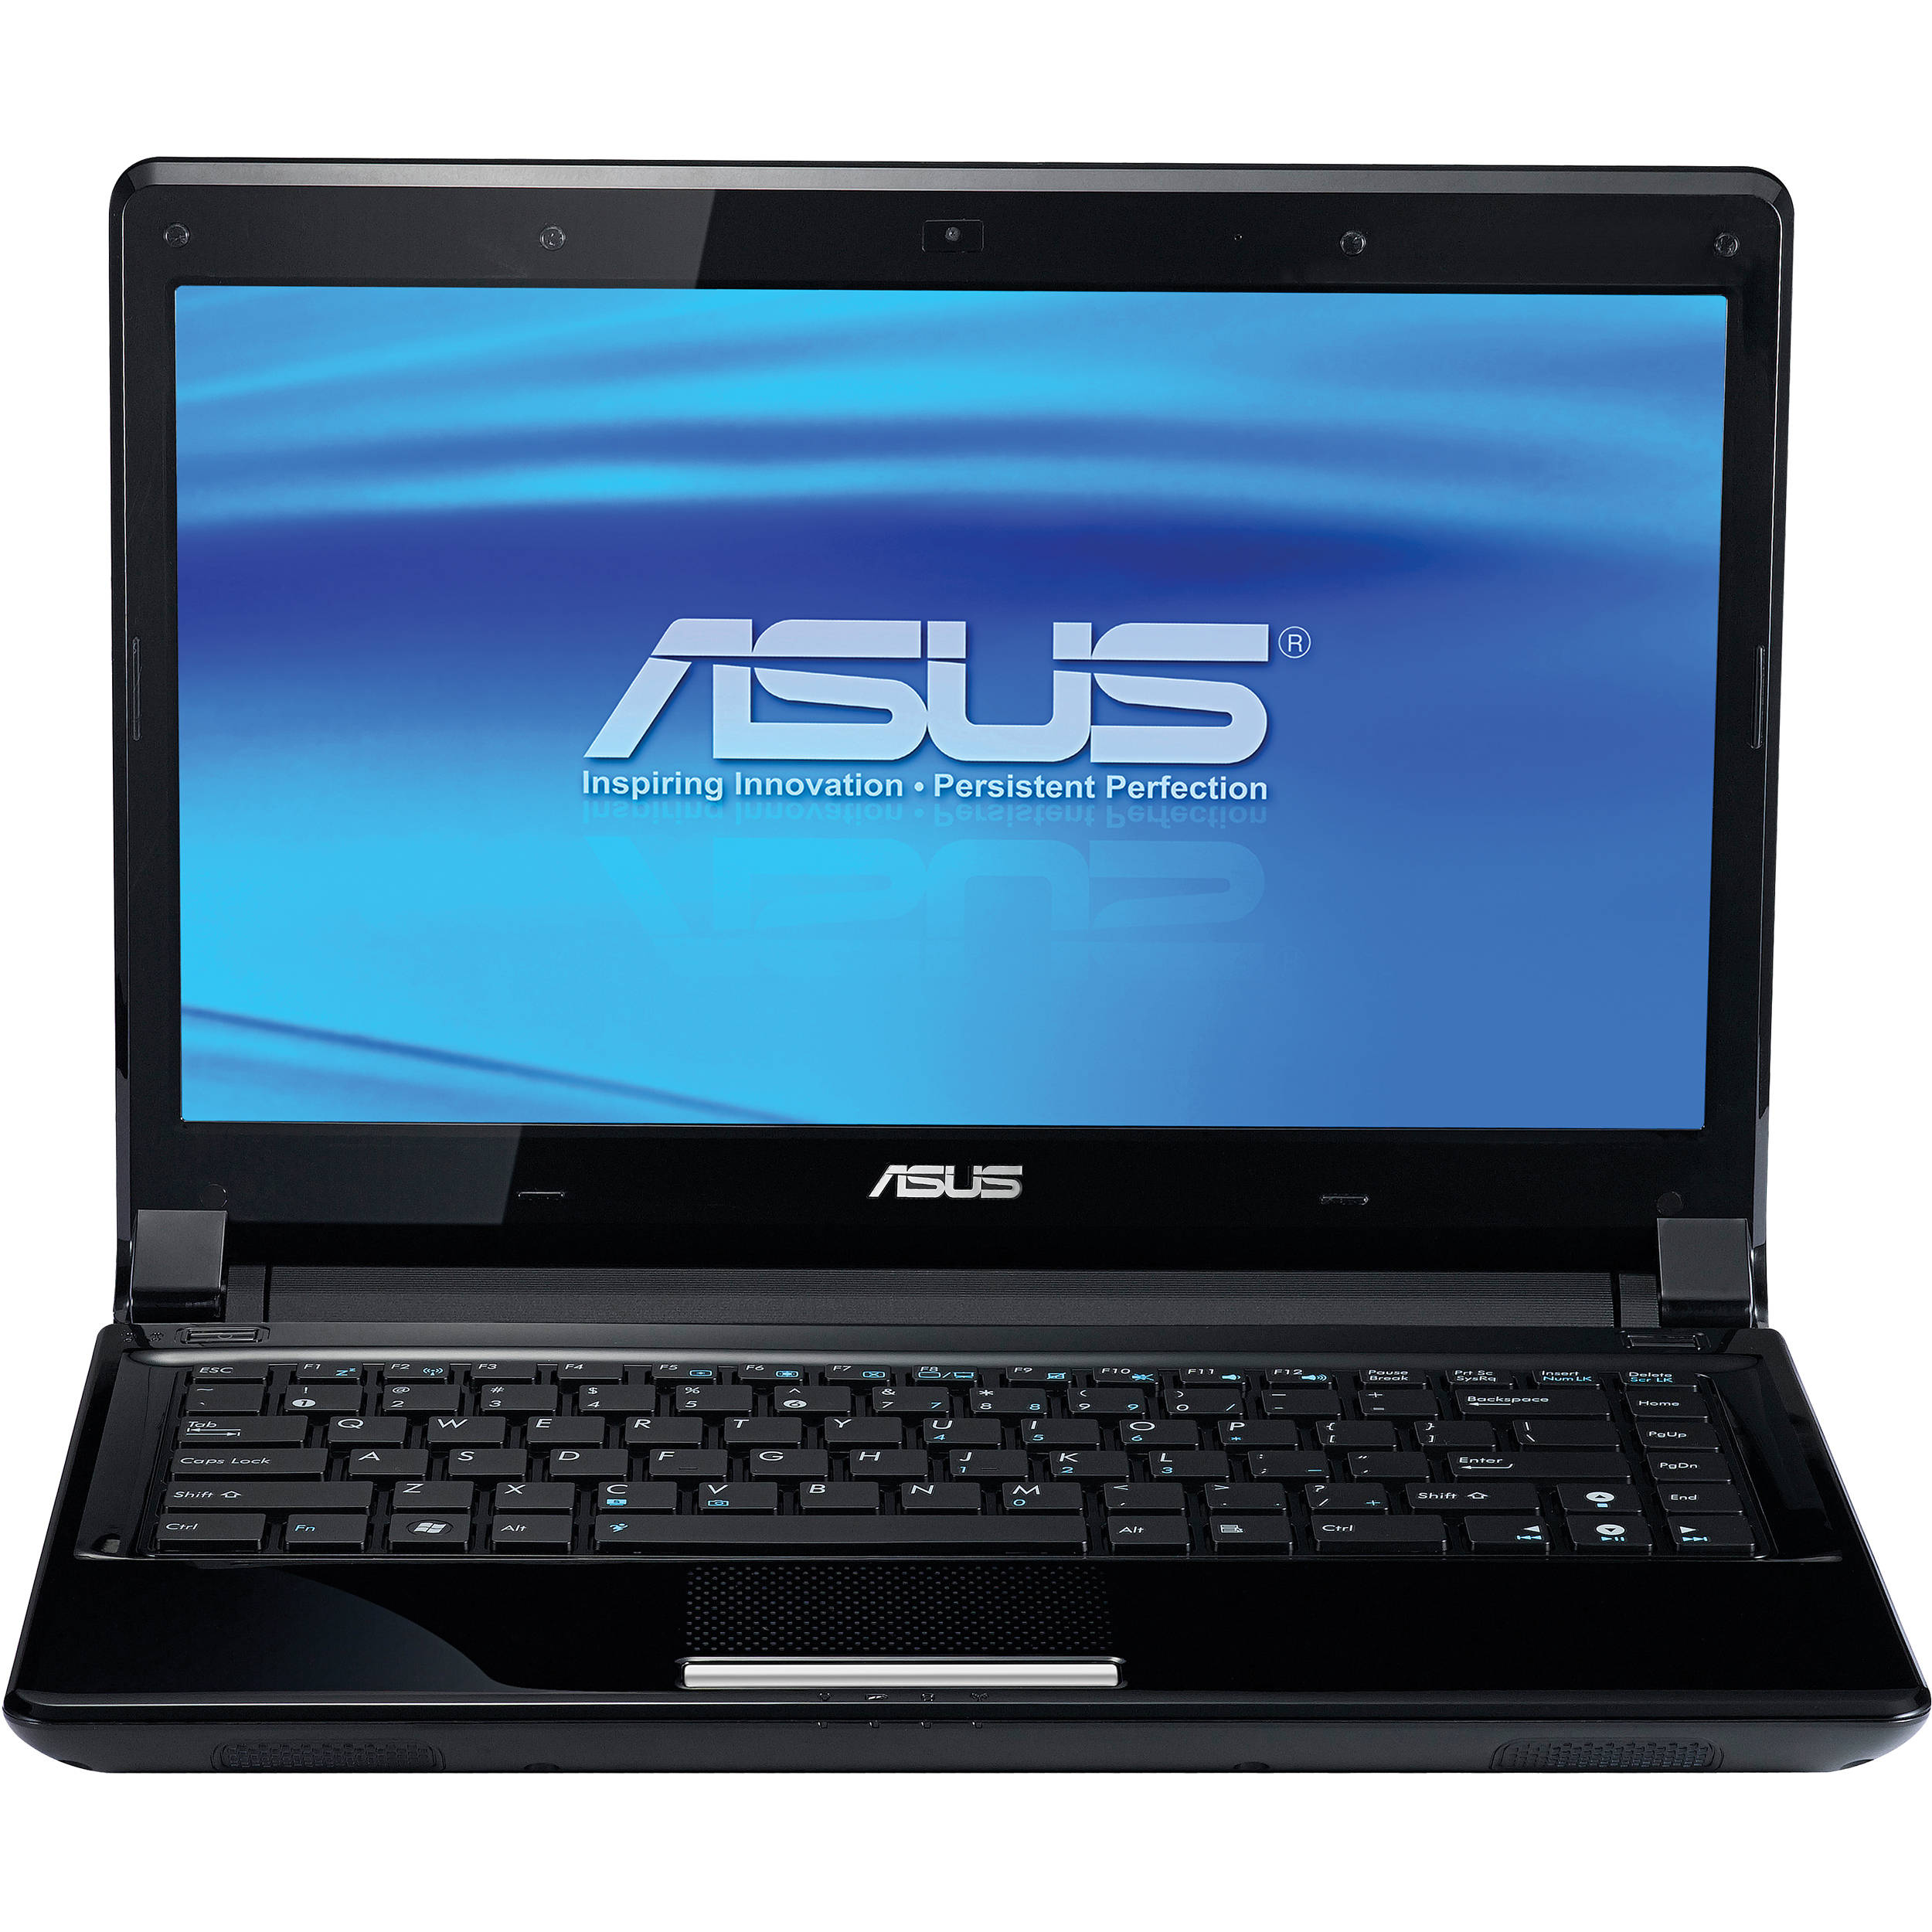 ASUS UL80VT AUDIO DRIVERS FOR PC